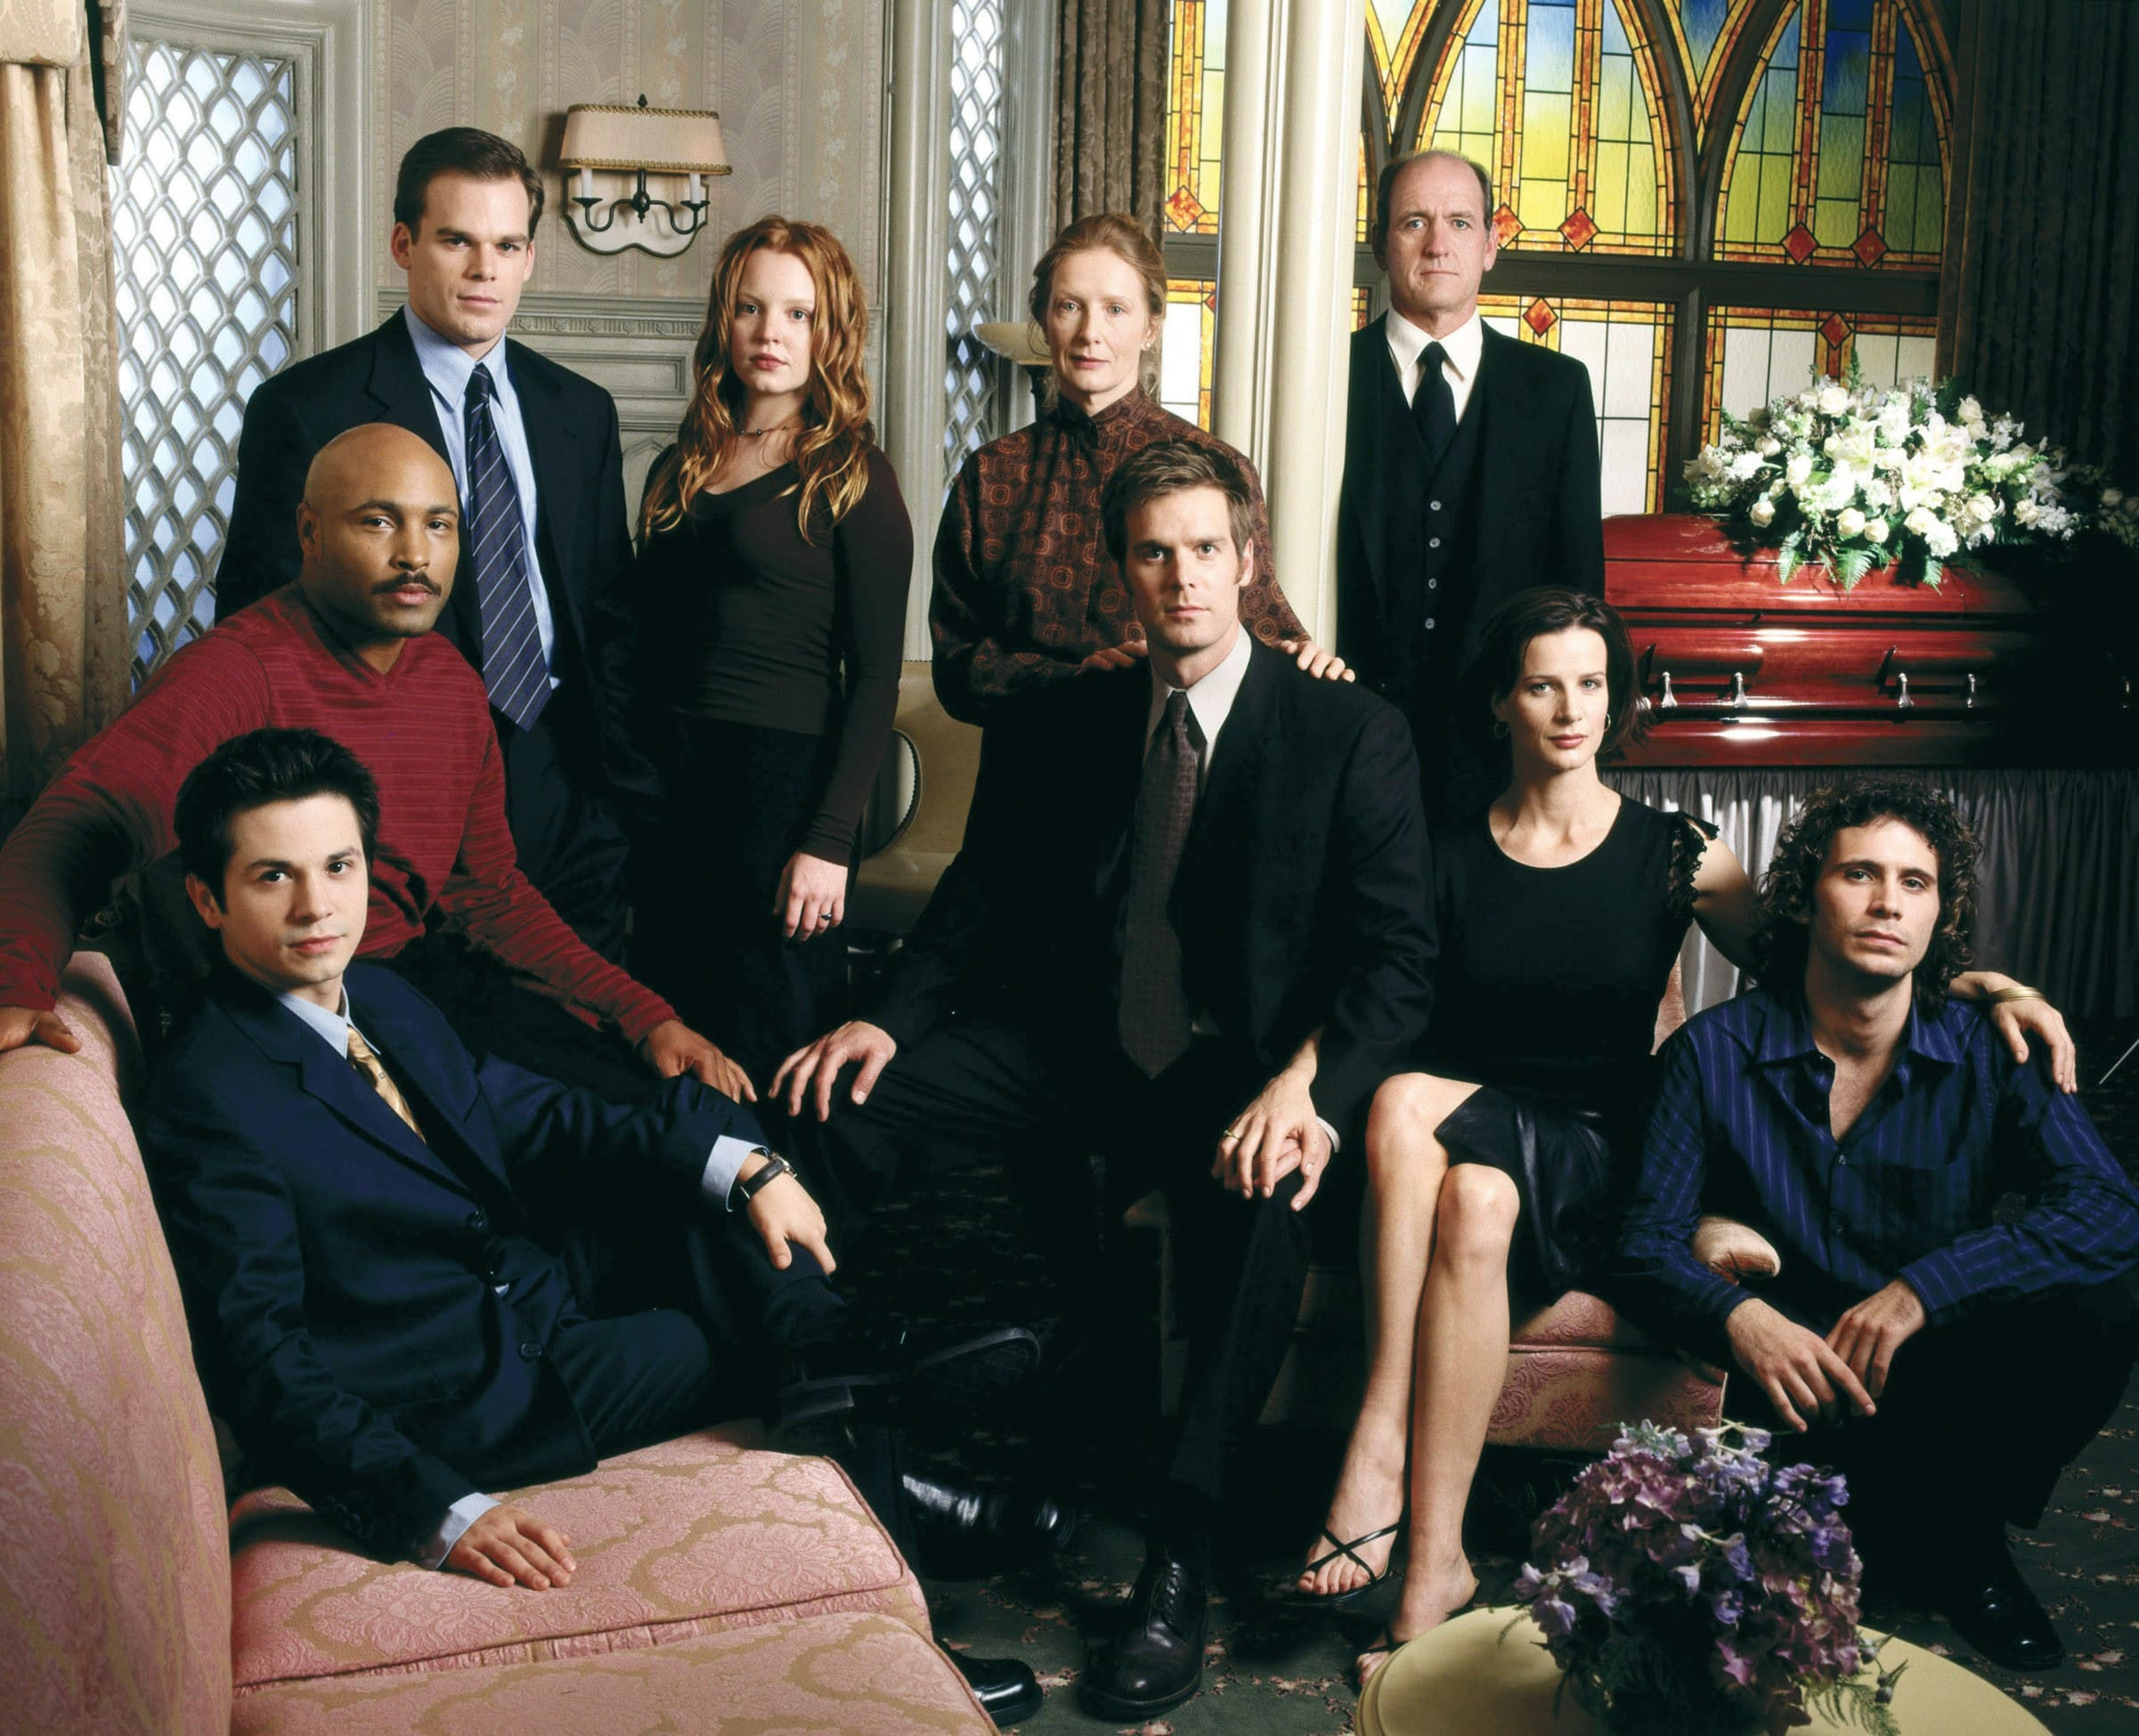 SIX FEET UNDER, (standing, l to r): Michael C. Hall, Lauren Ambrose, Frances Conroy, Richard Jenkins, (sitting): Freddy Rodriguez, Mathew St. Patrick, Peter Krause, Rachel Griffiths, Jeremy Sisto, 2001-2005, © HBO / Courtesy: Everett Collection